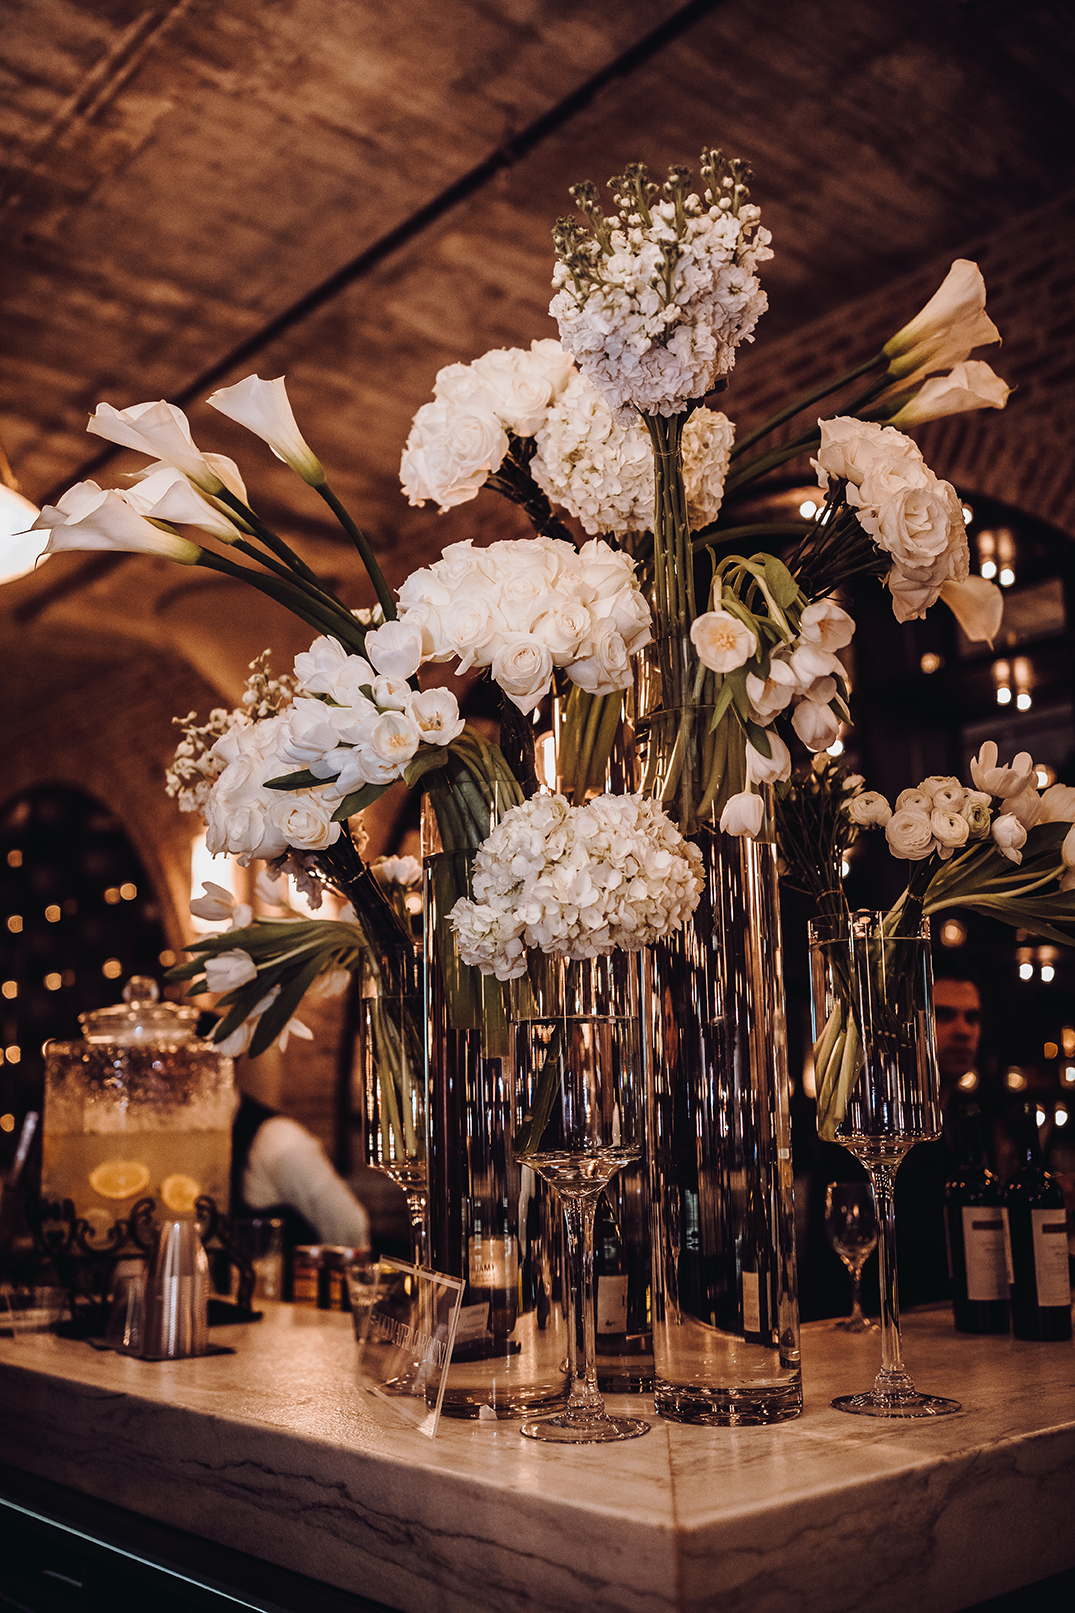 Houston Wedding, Bar Decor, White Flowers, Wedding Decor